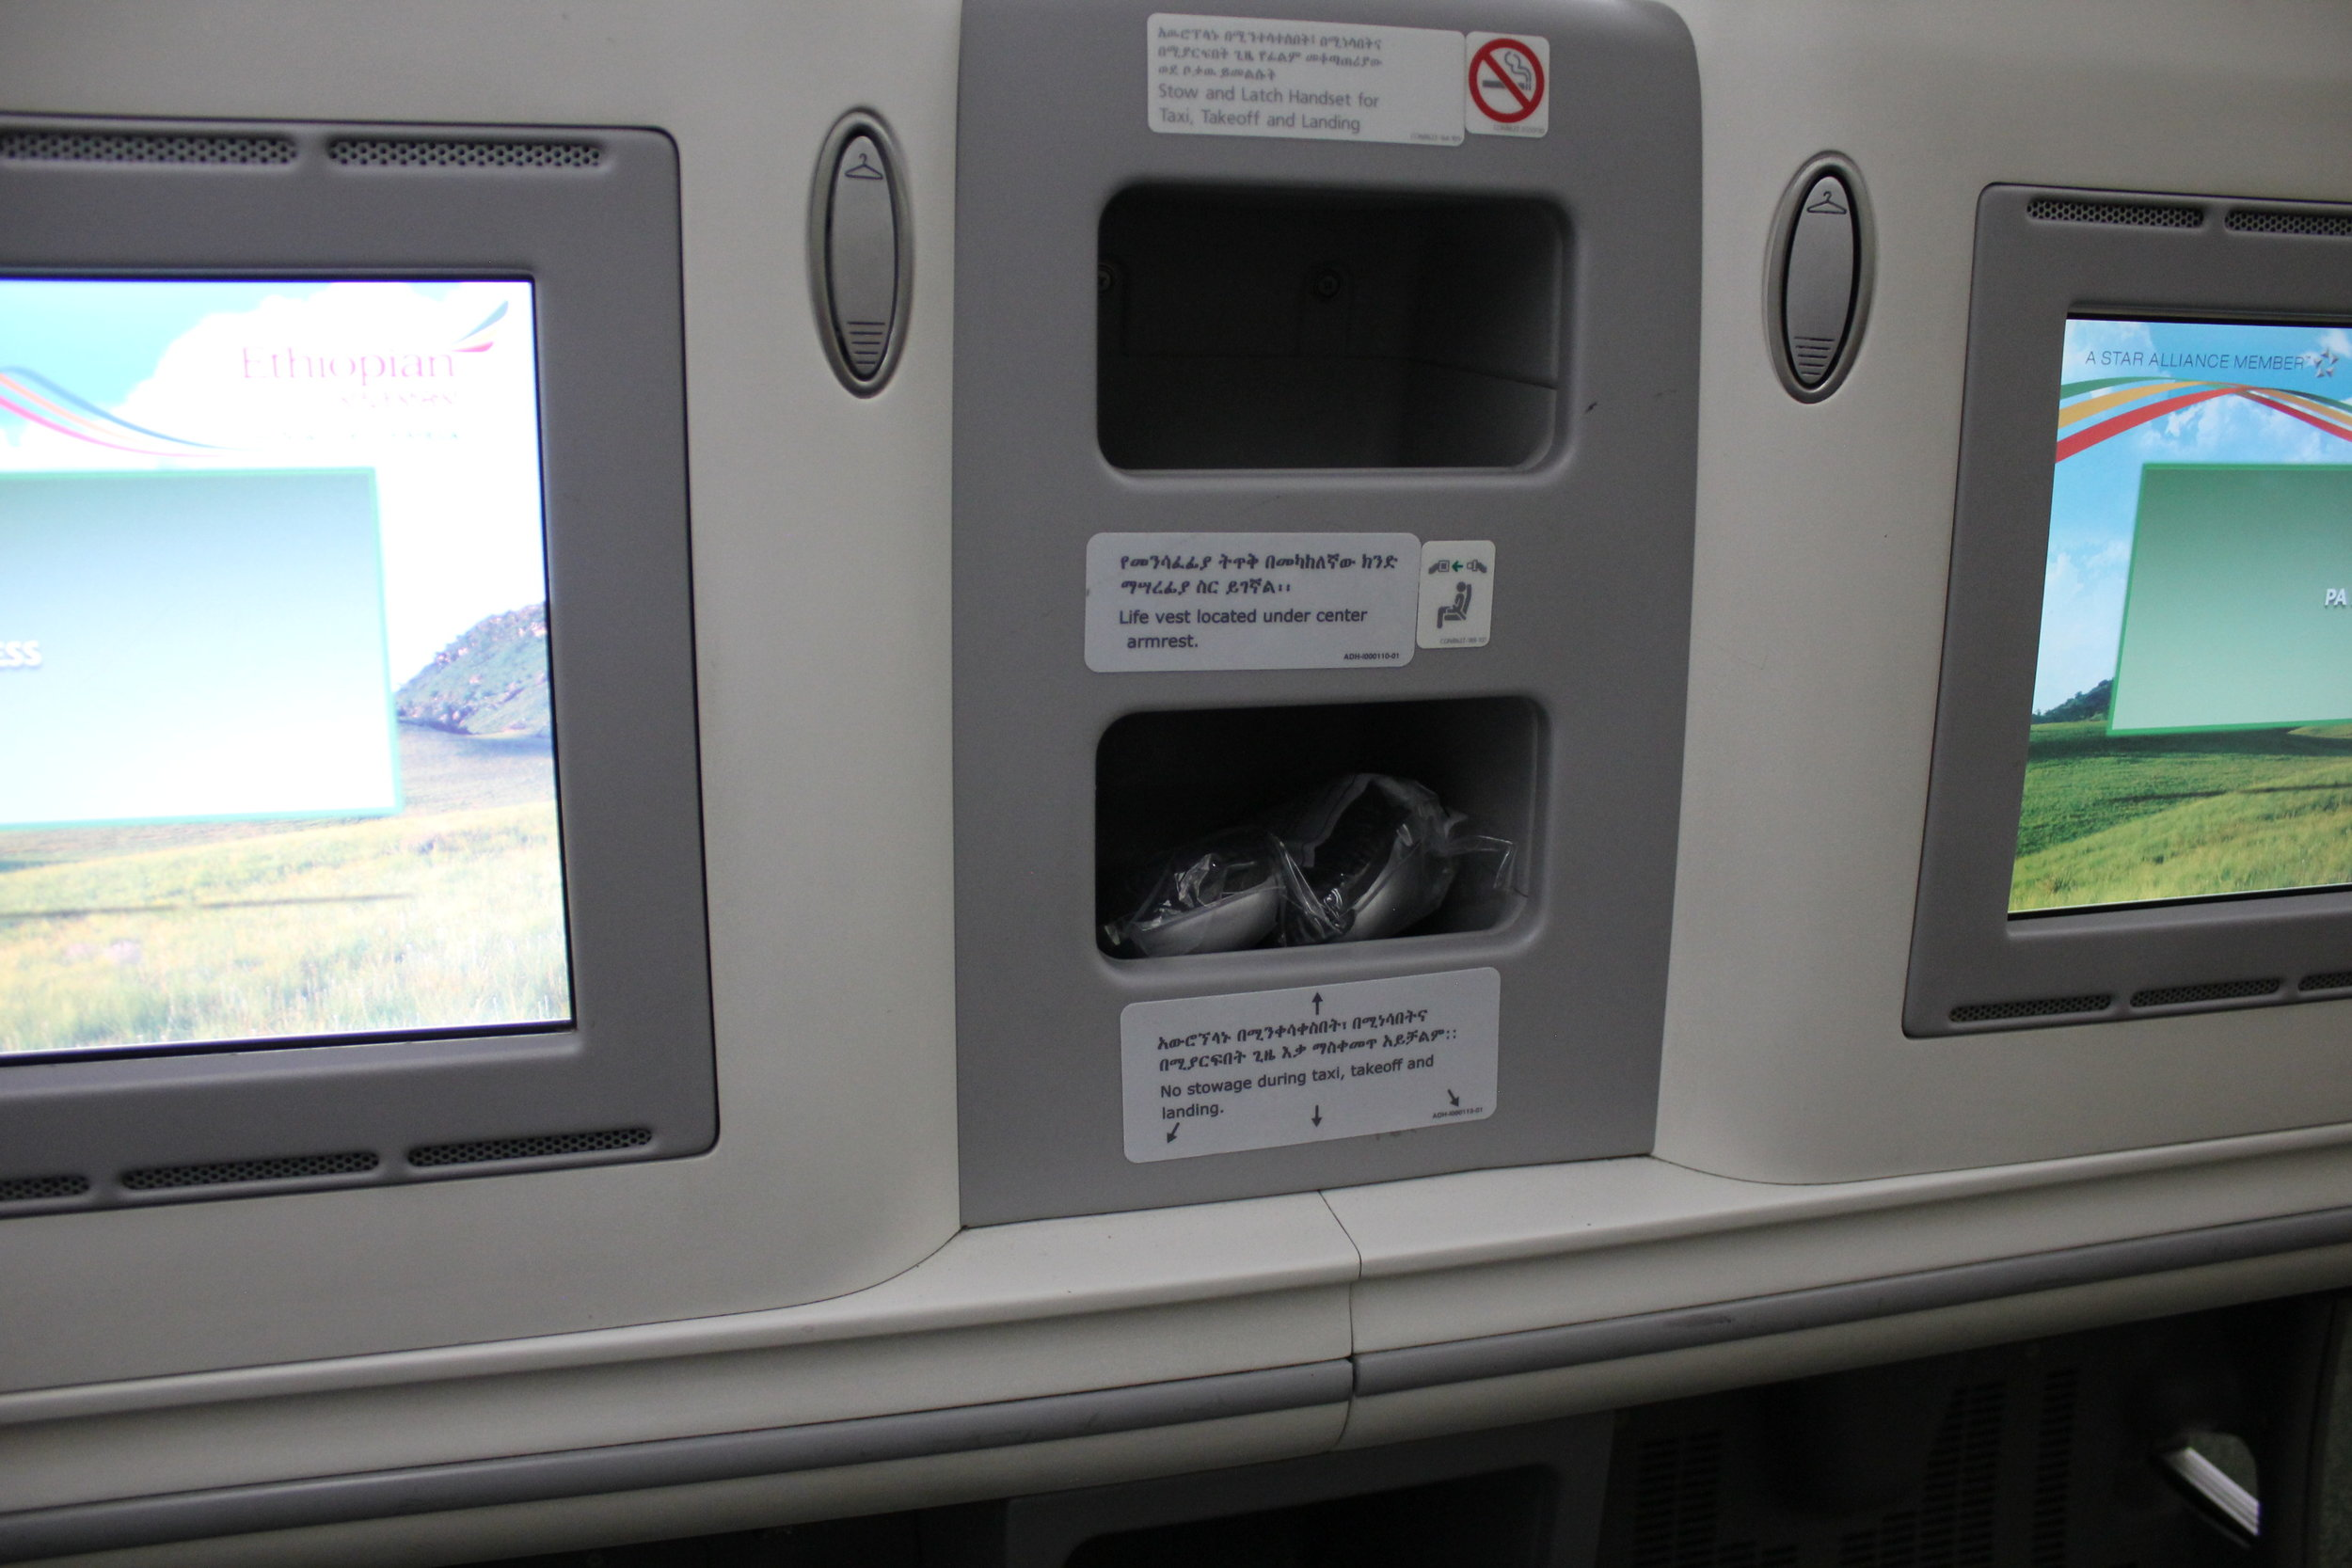 Ethiopian Airlines business class – Storage compartments and hooks